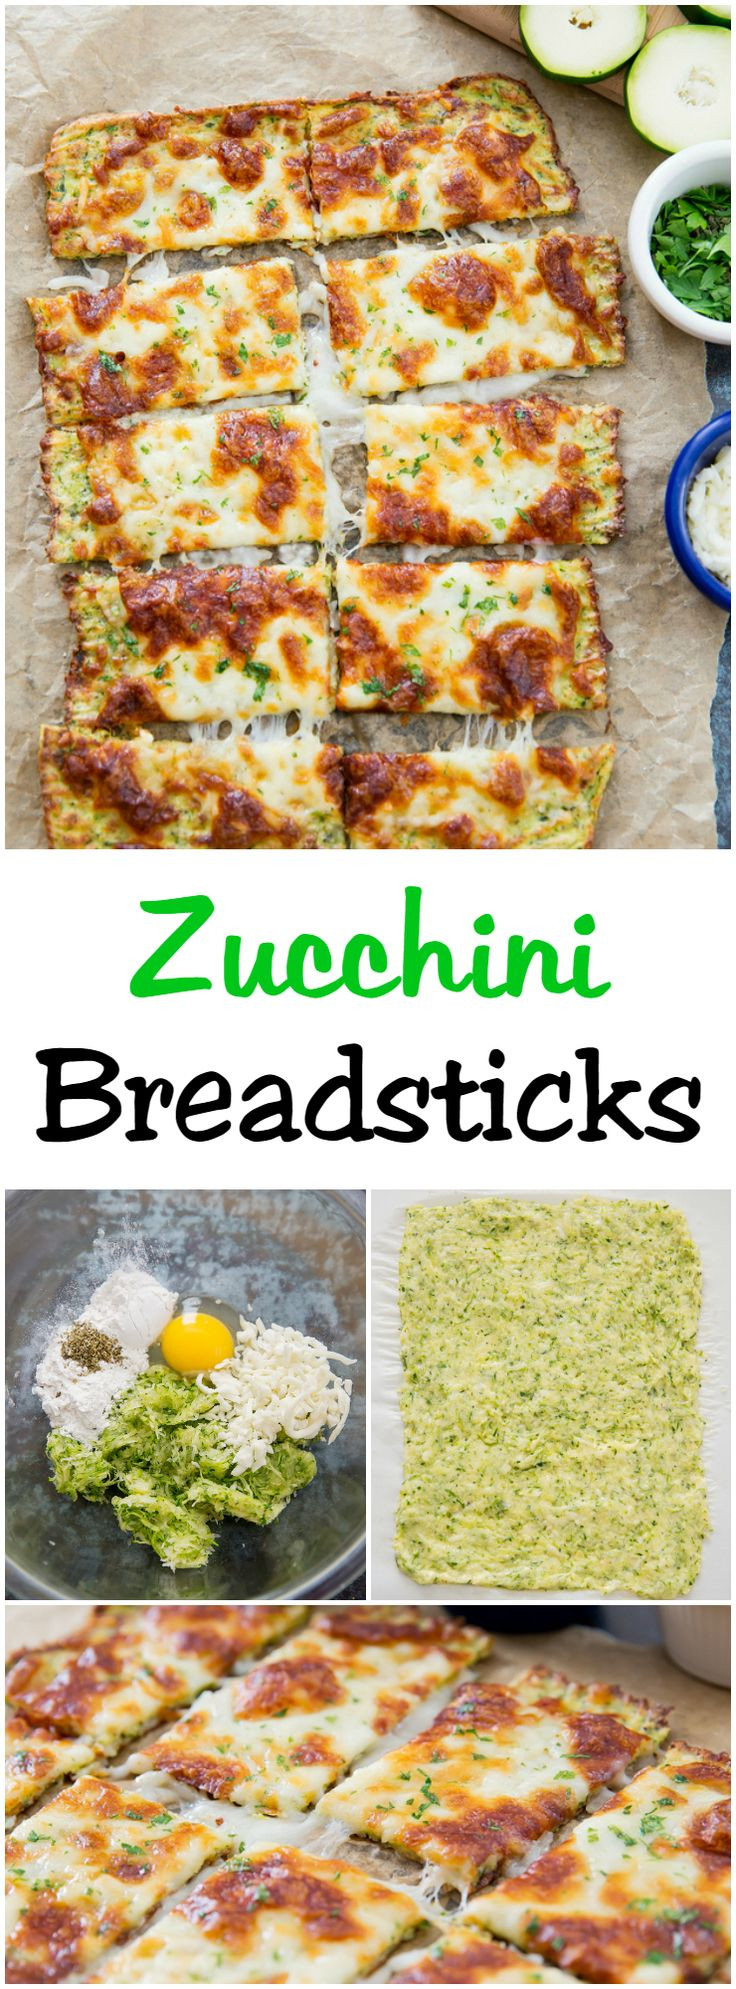 Low Carb Zucchini Cheese Bread  937 best images about My recipe posts on Pinterest